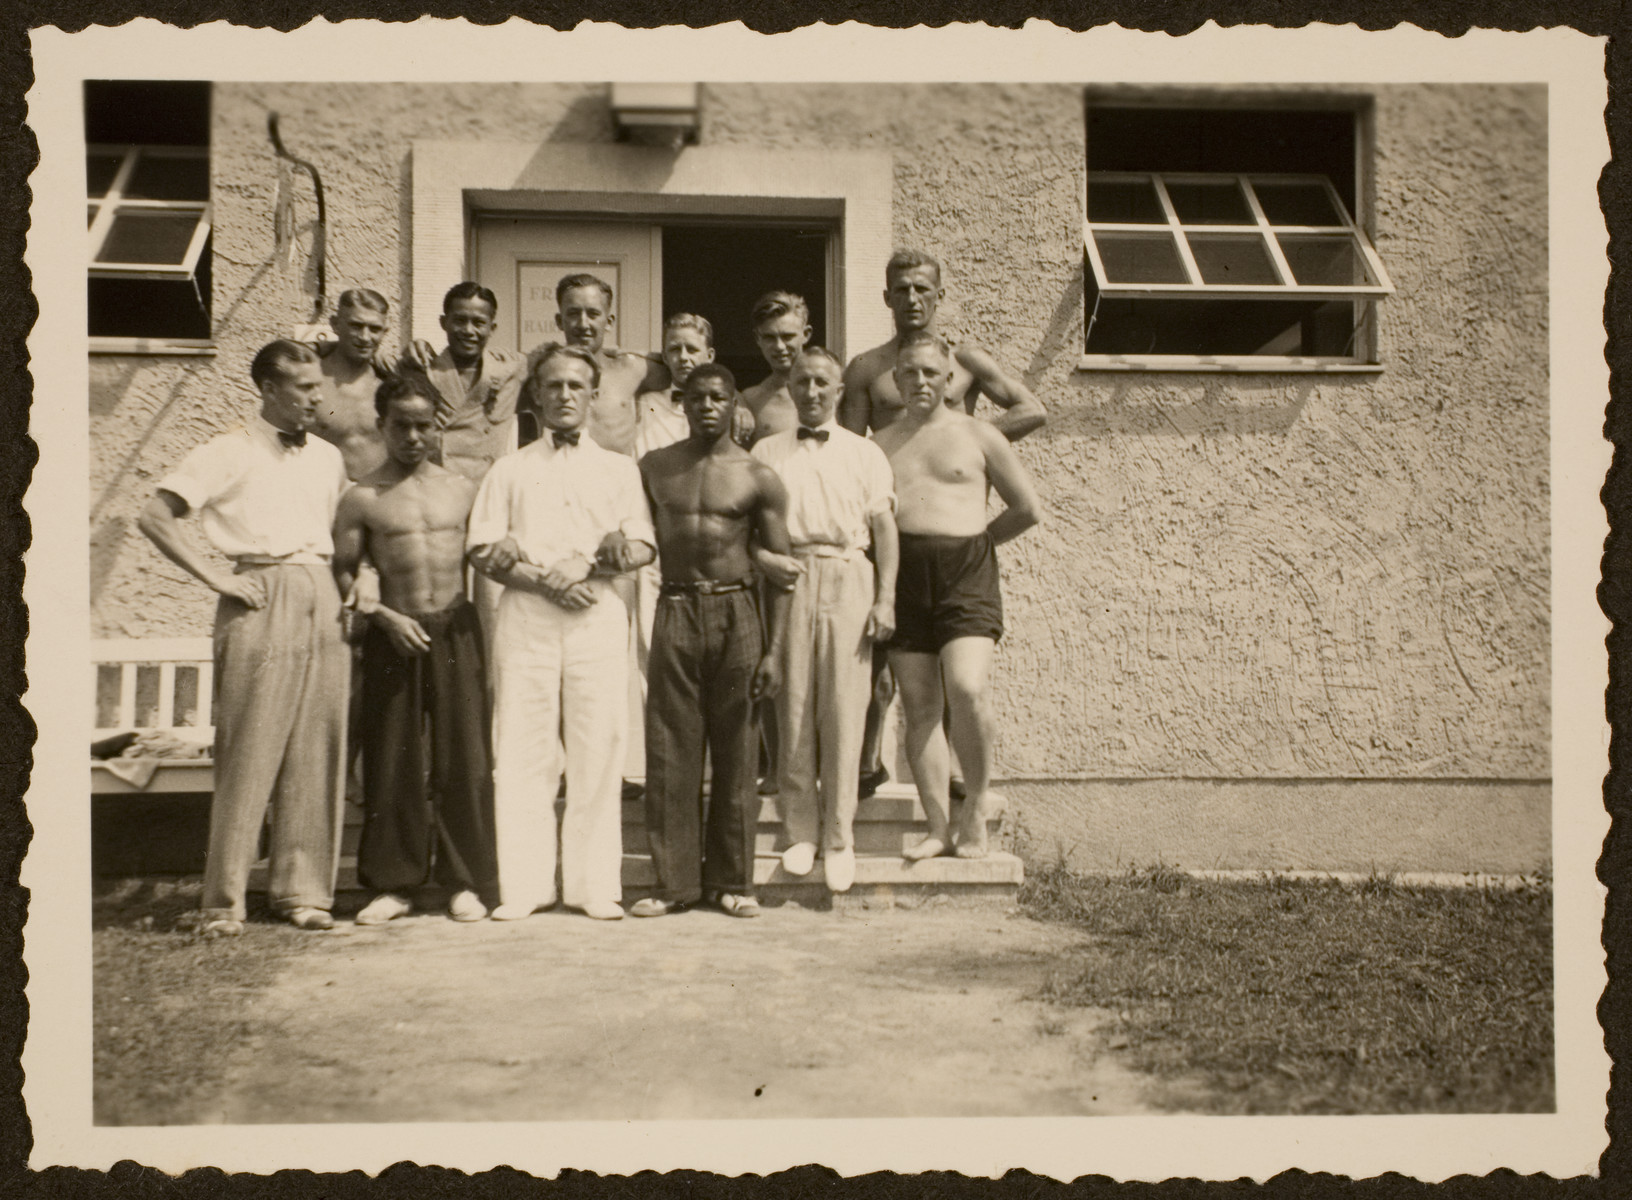 A group of athletes pose in front of one of the residences in the Olympic village.  Among those pictured is American athlete, Archie Williams, fourth  from the left.   The identities of the other athletes is unknown.